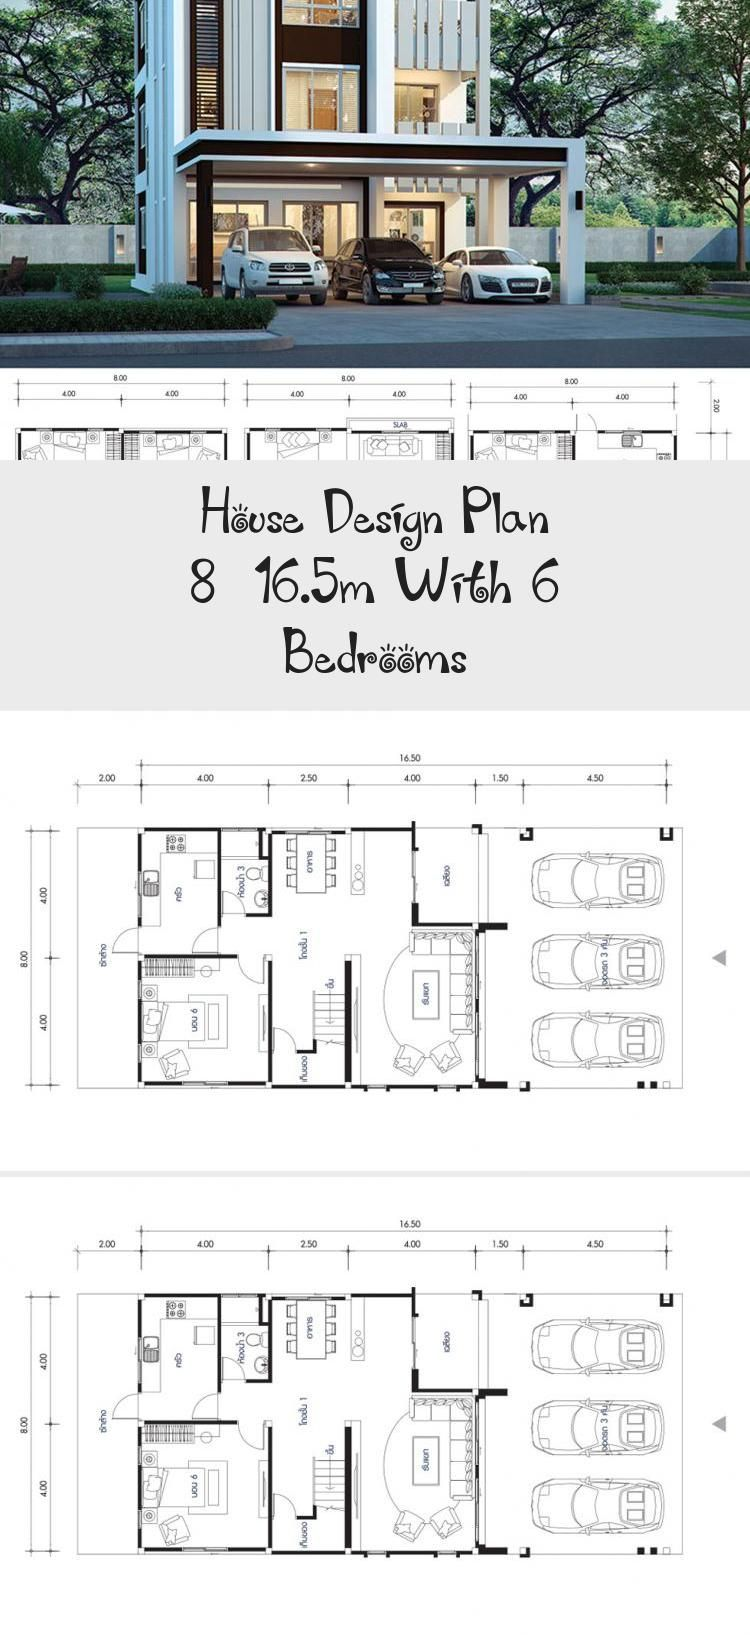 House Design Plan 8x16 5m With 6 Bedrooms Home Design With Plan Dreamhouseplans Bungalowhouseplans In 2020 Unique House Plans Brick House Plans Home Design Plans